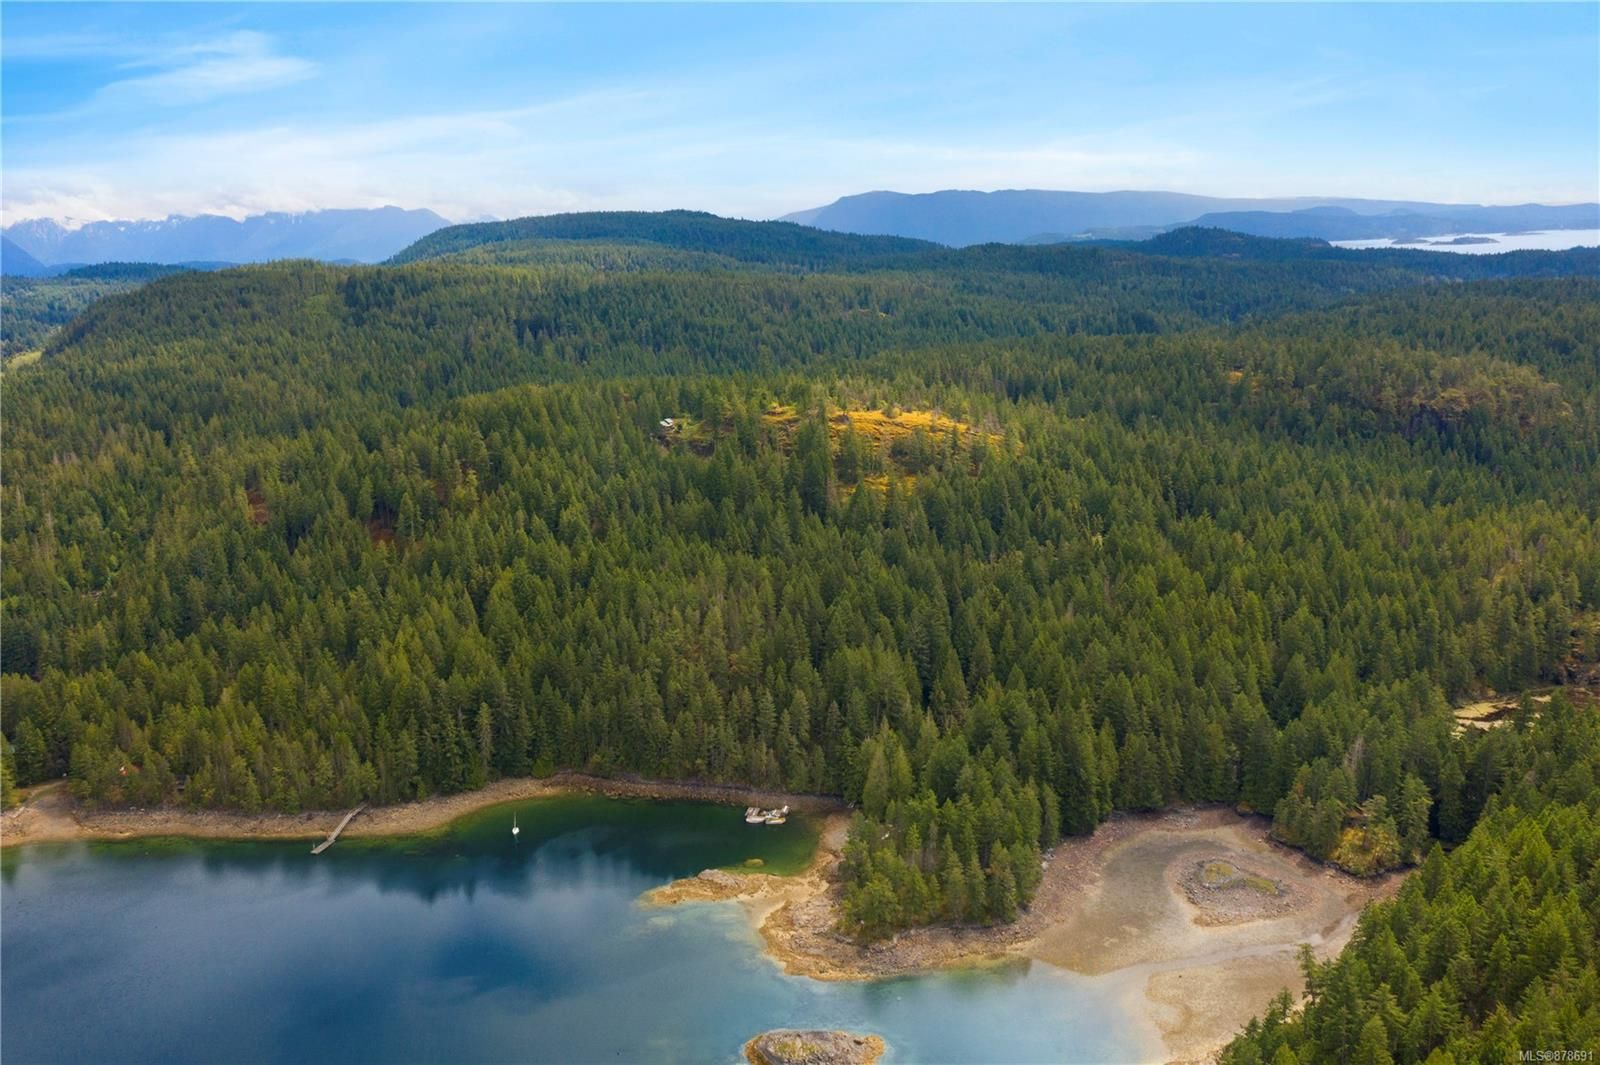 Photo 7: Photos: 979 Thunder Rd in : Isl Cortes Island House for sale (Islands)  : MLS®# 878691